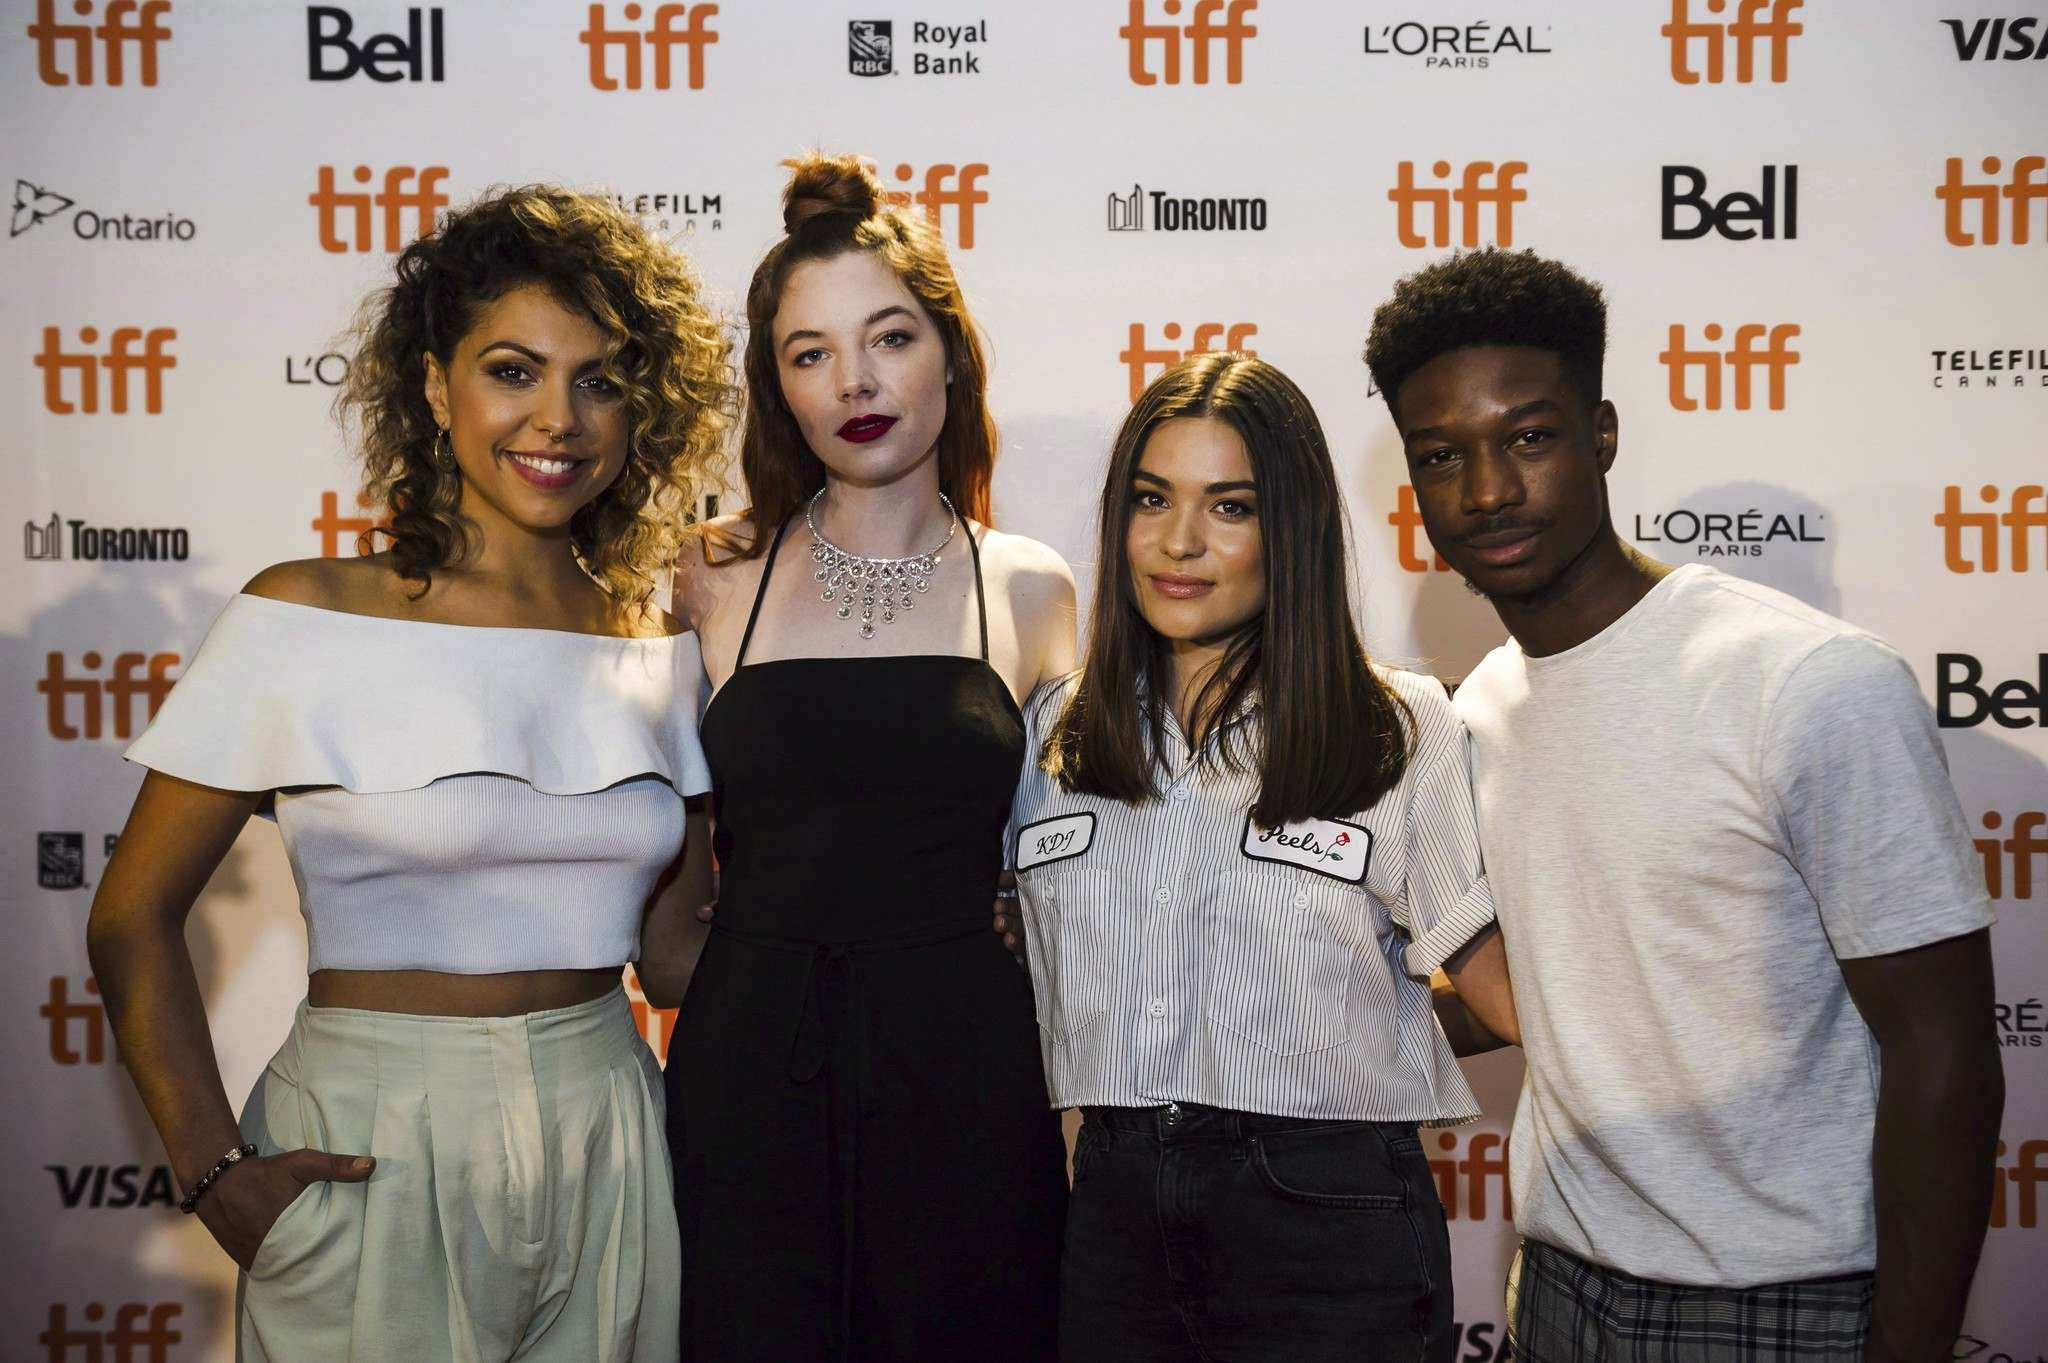 Christopher Katsarov / The Canadian Press Files</p><p>TIFF&rsquo;s Rising Stars, from left: Jess Salgueiro, Michaela Kurimsky, Devery Jacobs and Lamar Johnson.</p>